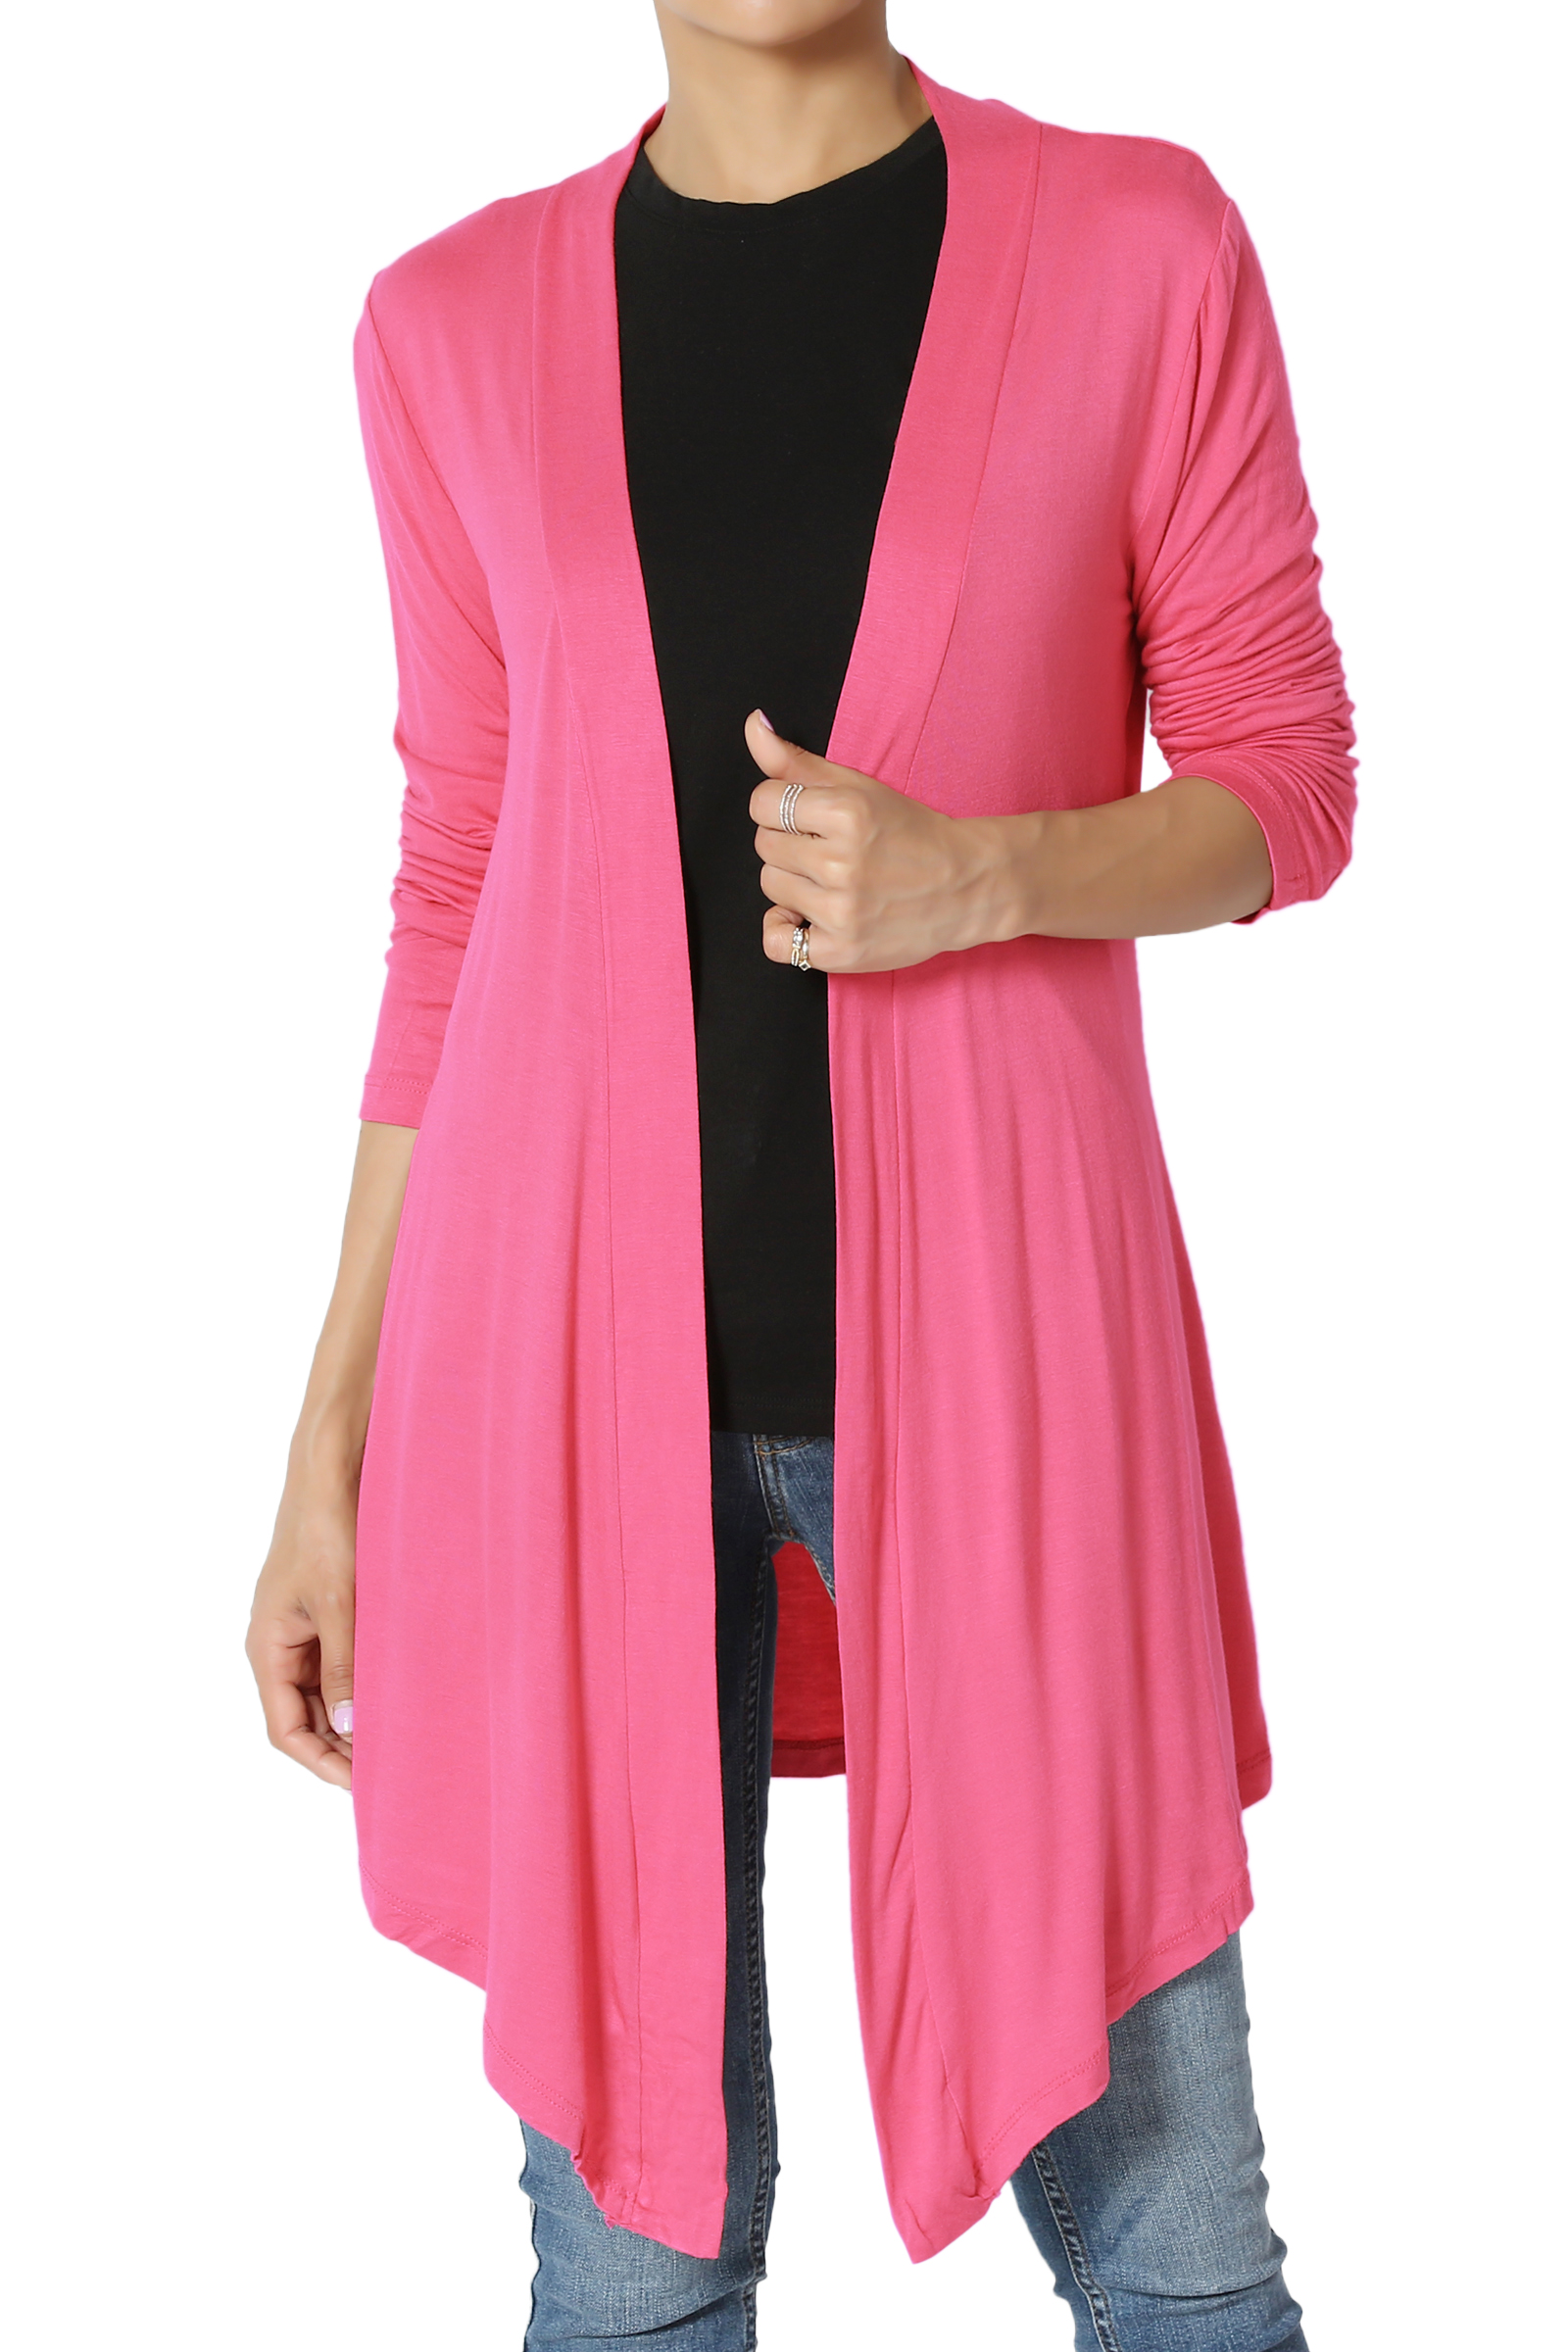 TheMogan Women's S~3X Plain Solid Lightweight Jersey Layering Long Open Cardigan